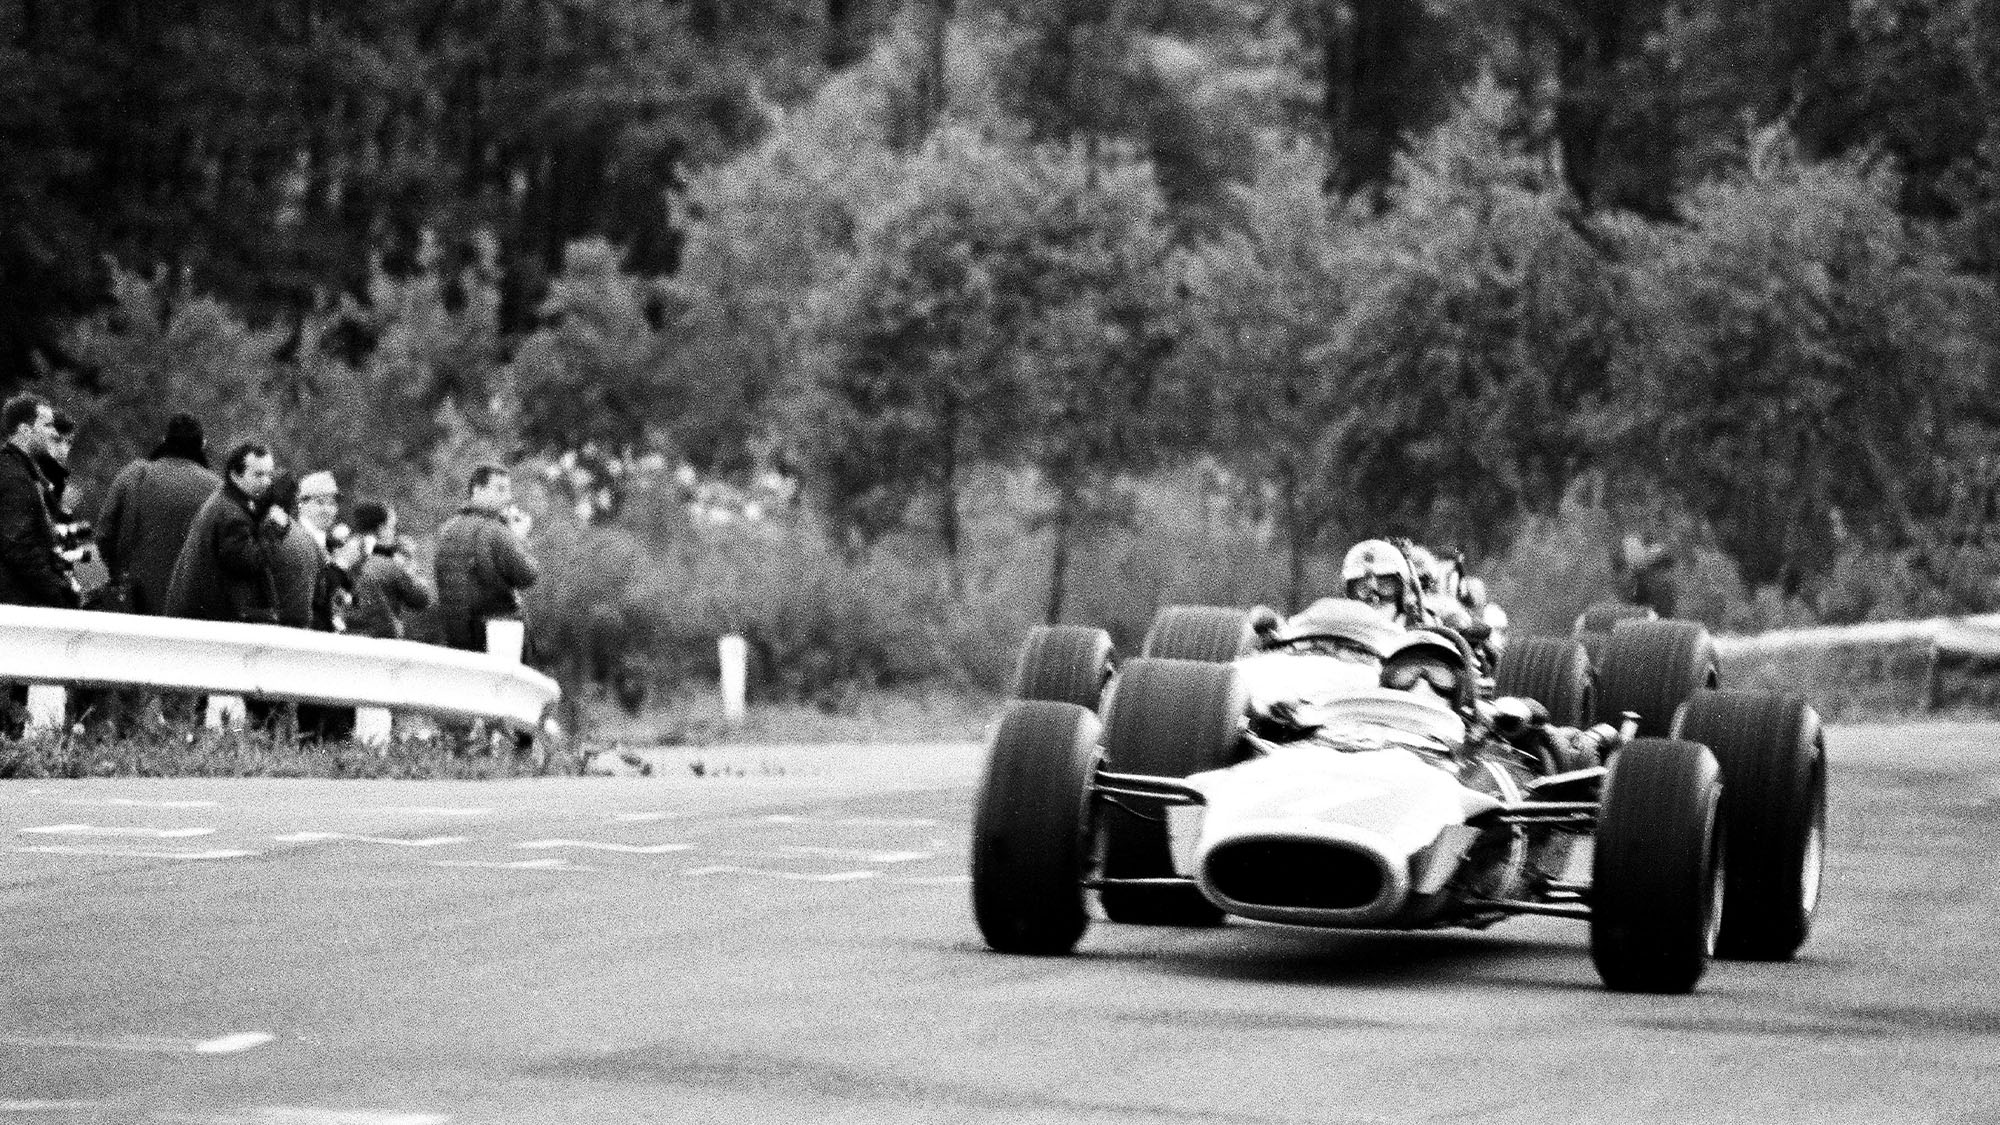 Jackie Stewart in a Matra MS10 at Spa Francorchamps during the 1968 Belgian Grand prix